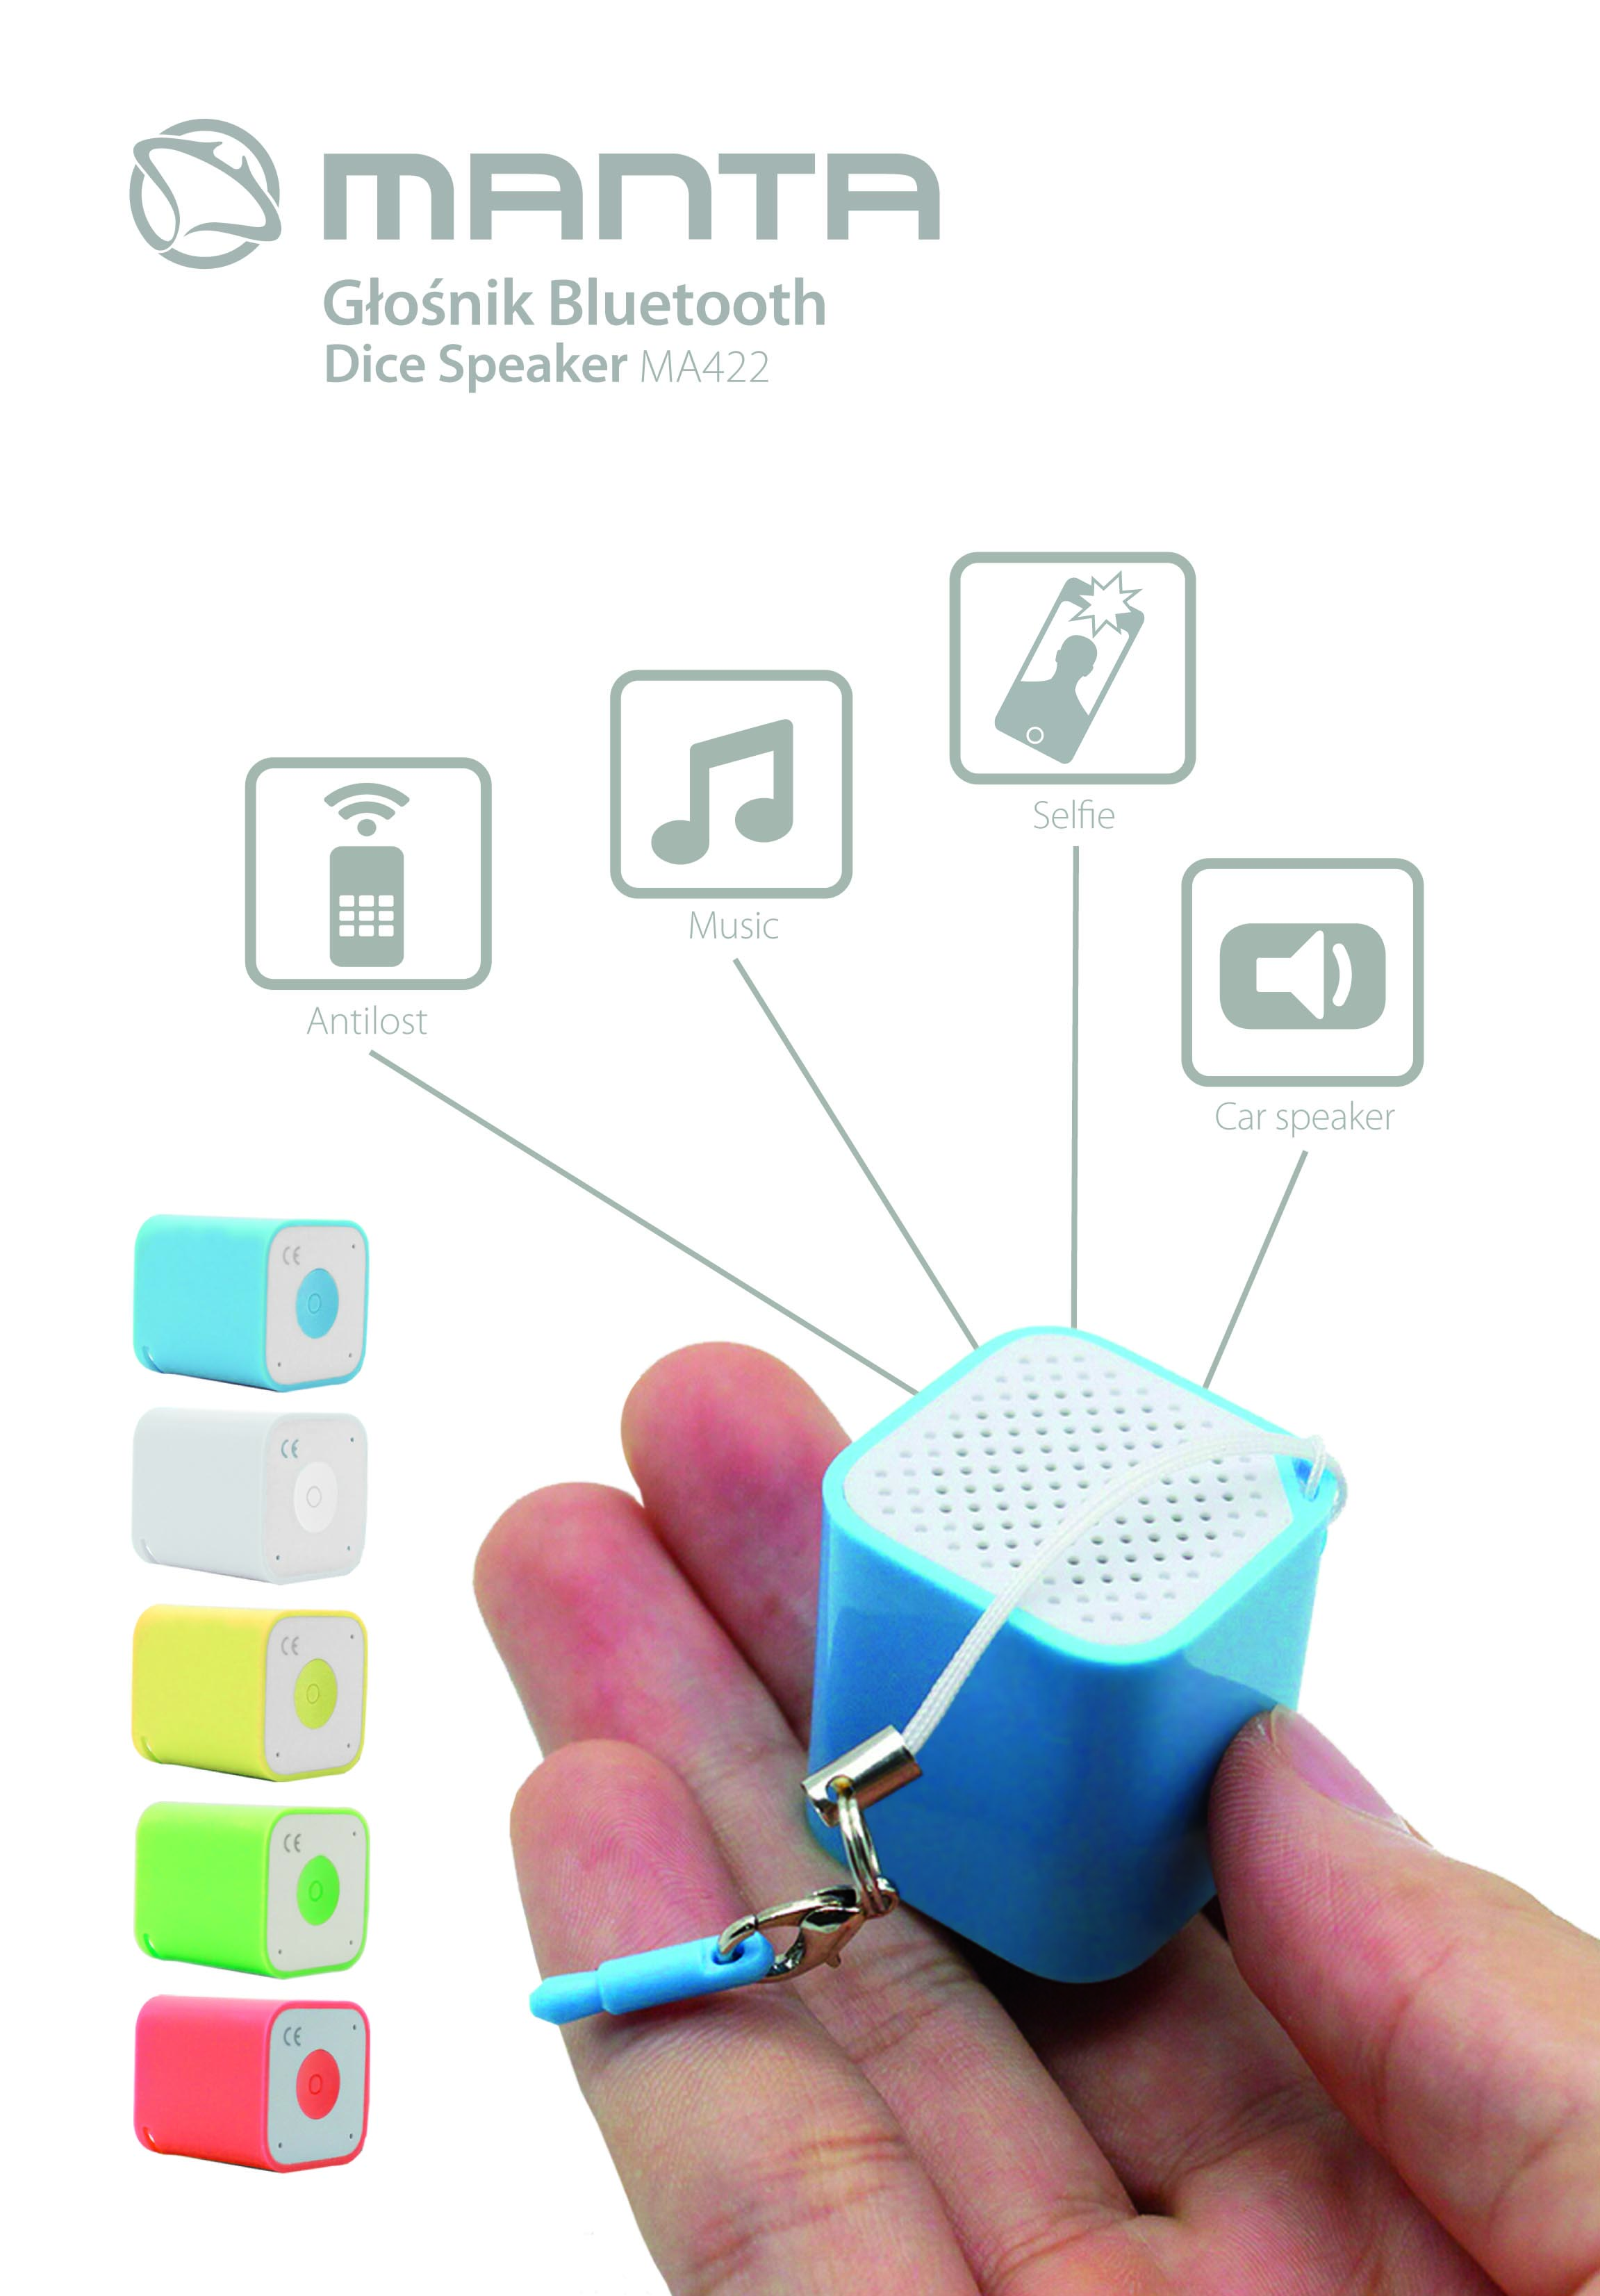 test manta dice bluetooth speaker ma422 ma a. Black Bedroom Furniture Sets. Home Design Ideas